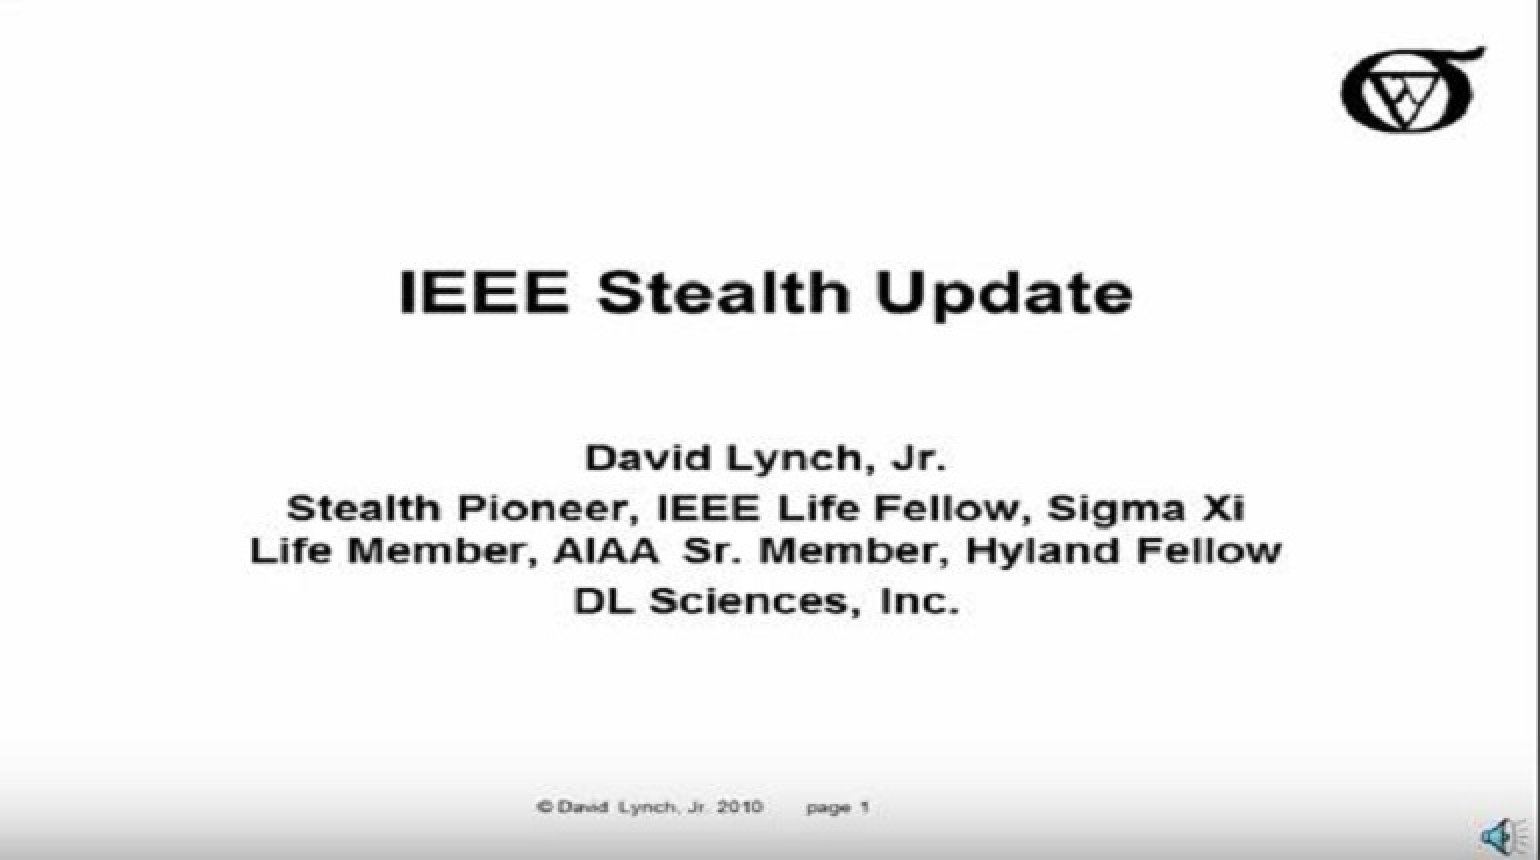 IEEE Stealth Update